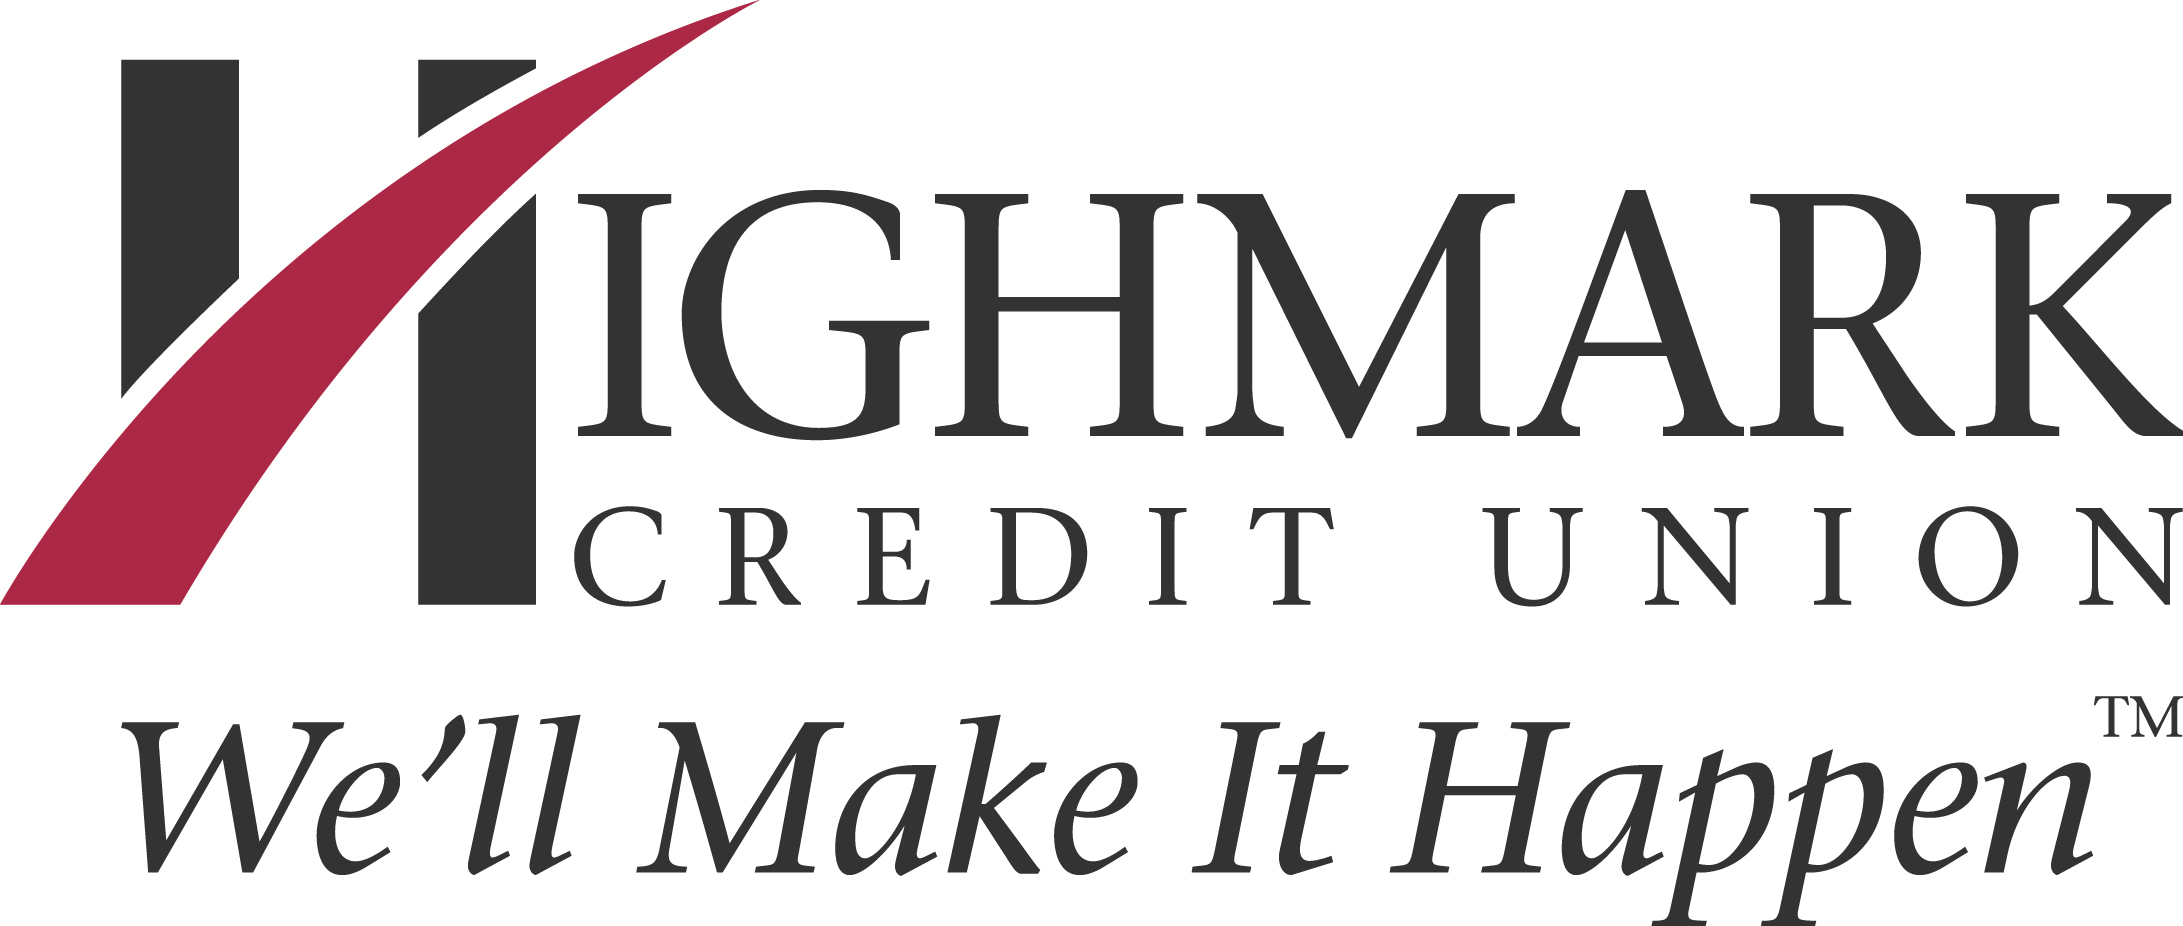 Highmark logo tagline copy